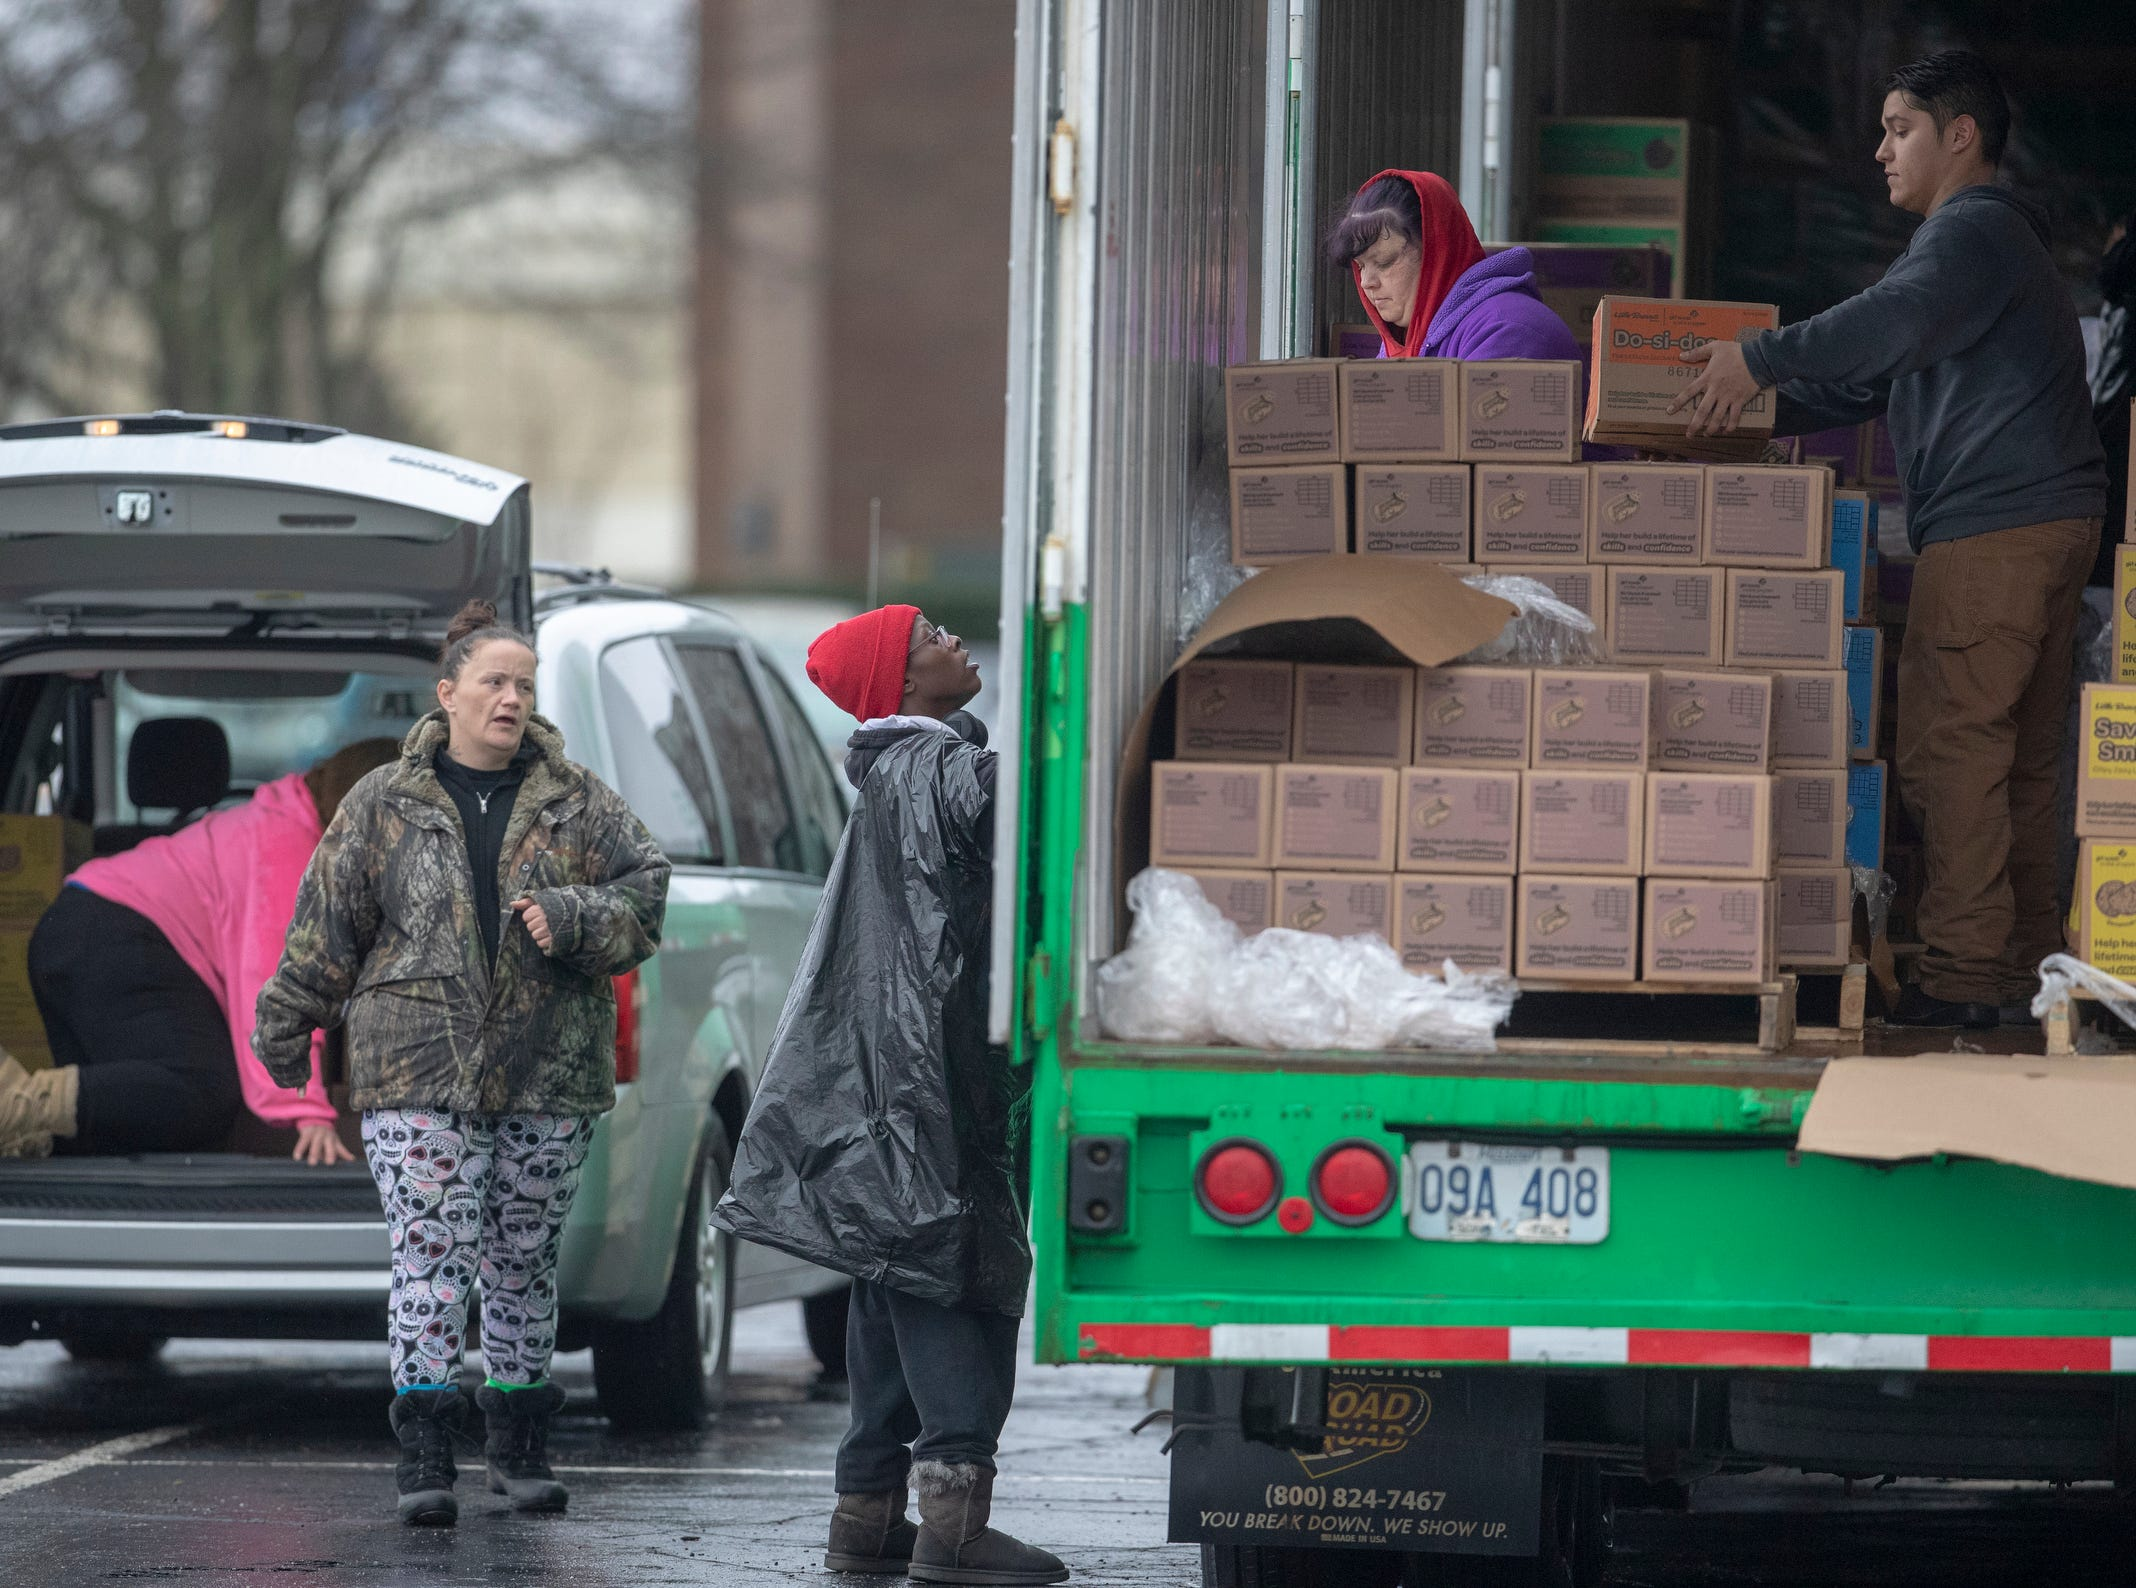 Distribution for Girl Scout Cookies in Indianapolis, Wednesday, Feb. 6, 2019. The cookies will start to appear locally on the weekend, and should last into mid-March.